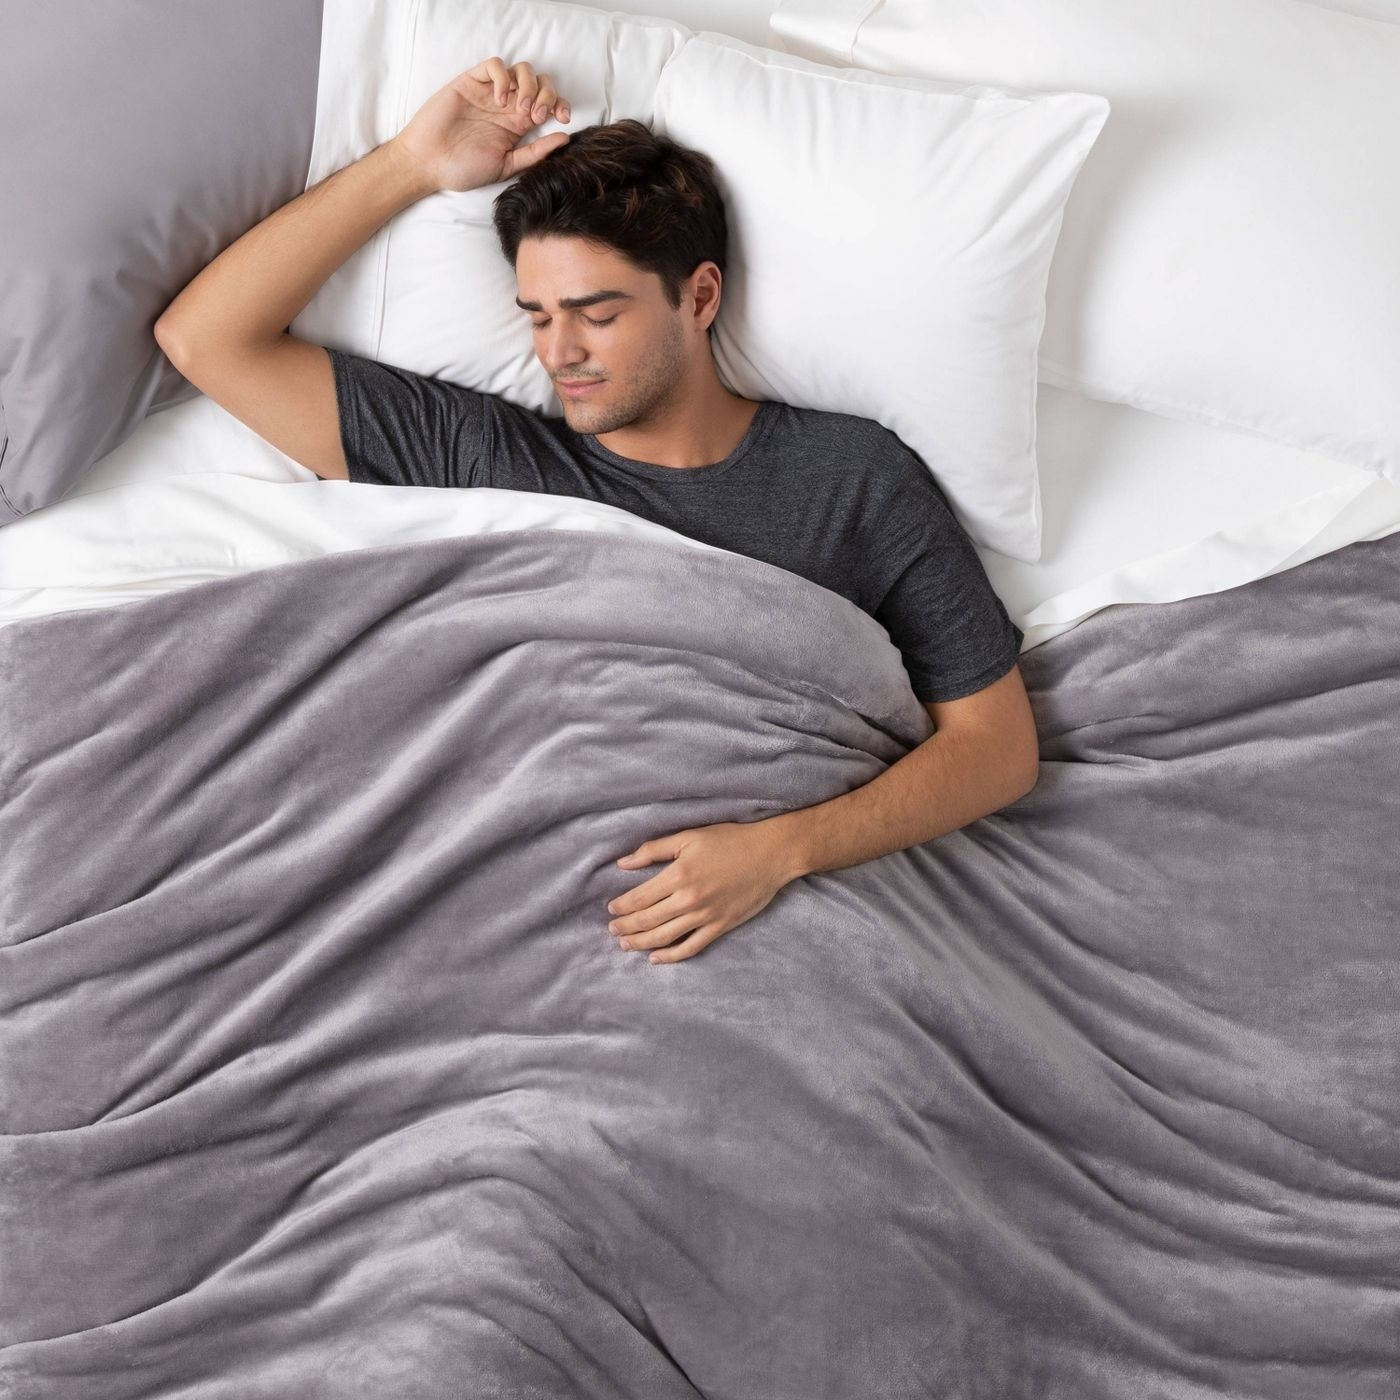 Model wears dark gray microplush weighted blanket in a bed with white sheets and pillows